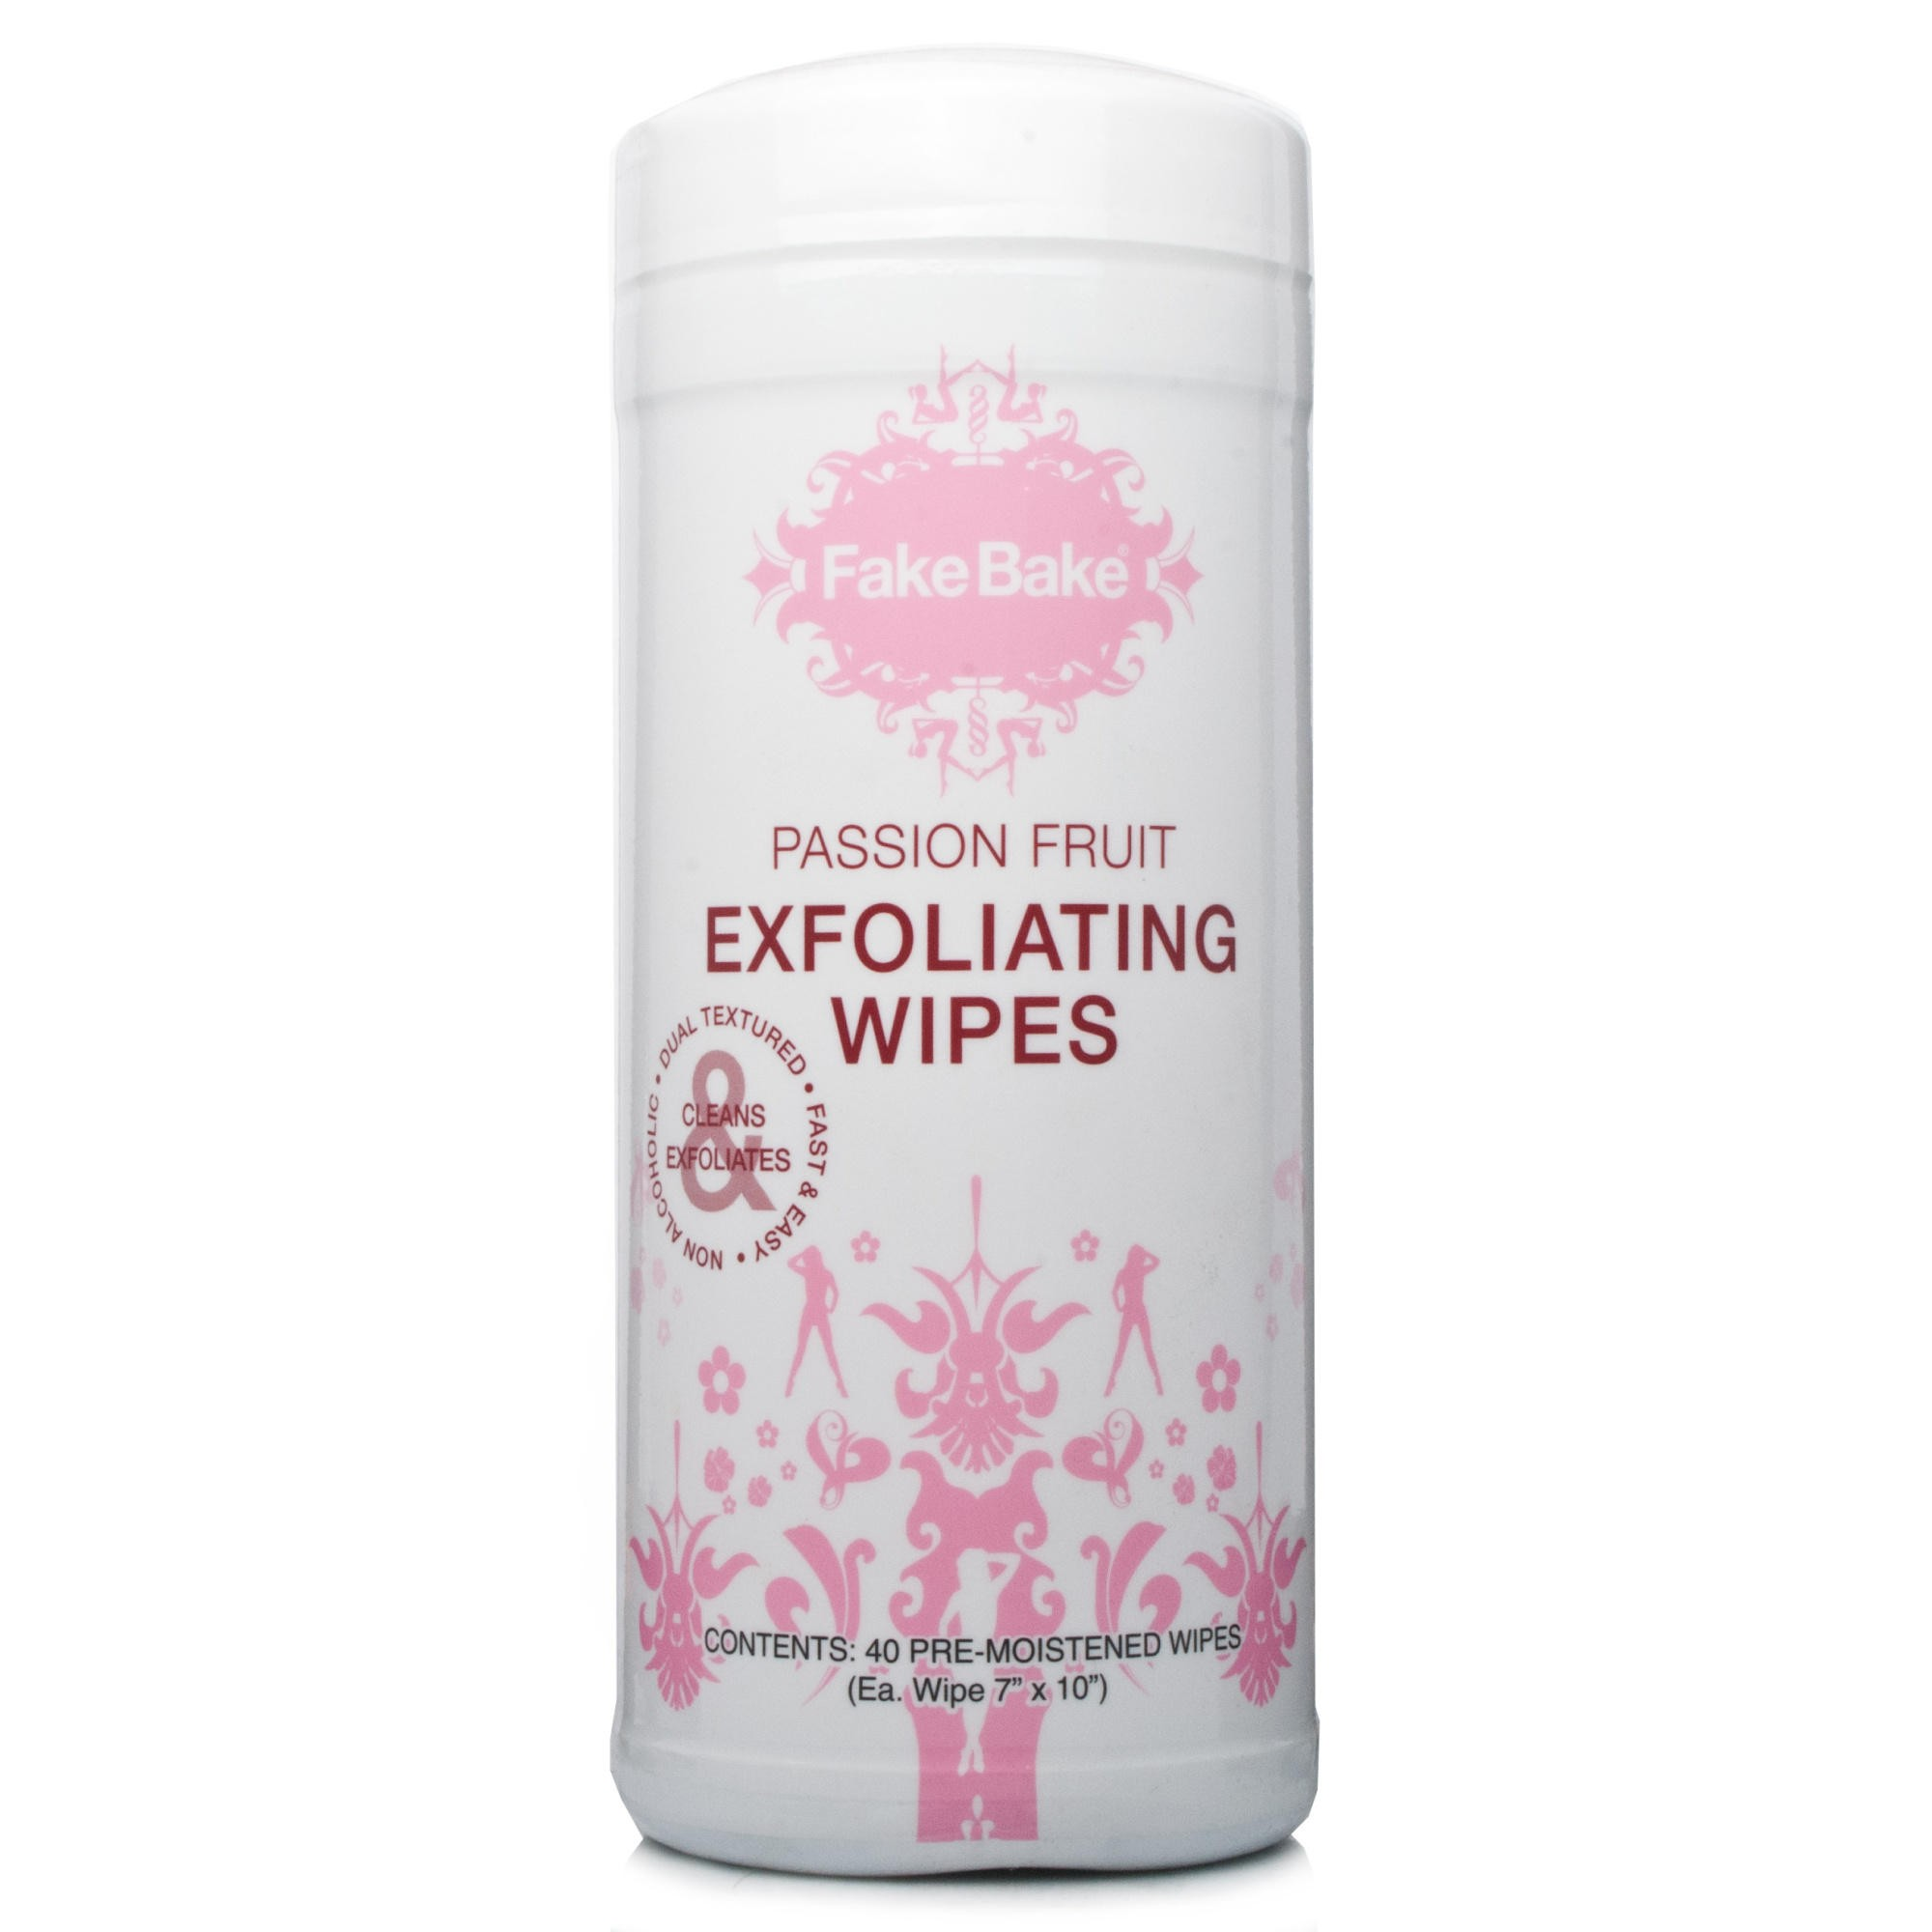 Fake Bake Passion Fruit Exfoliating Wipes